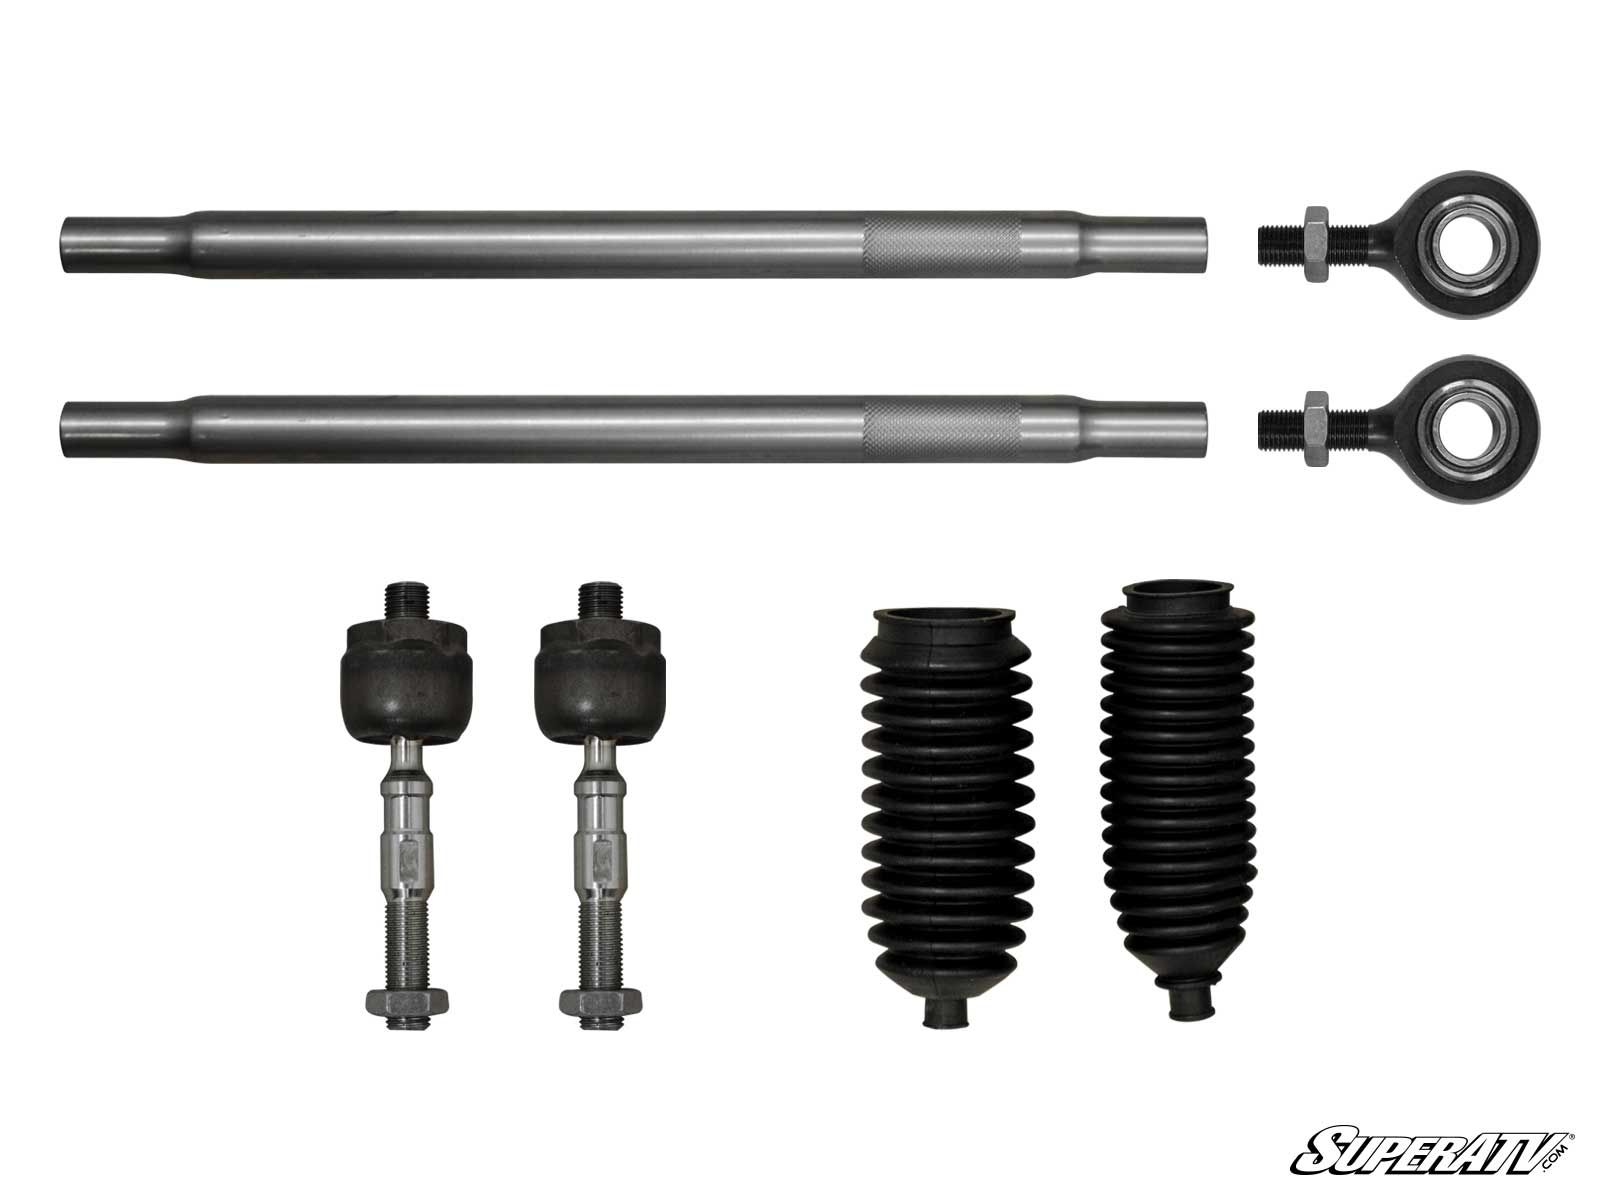 Heavy Duty Tie Rods for Polaris RZR 1000